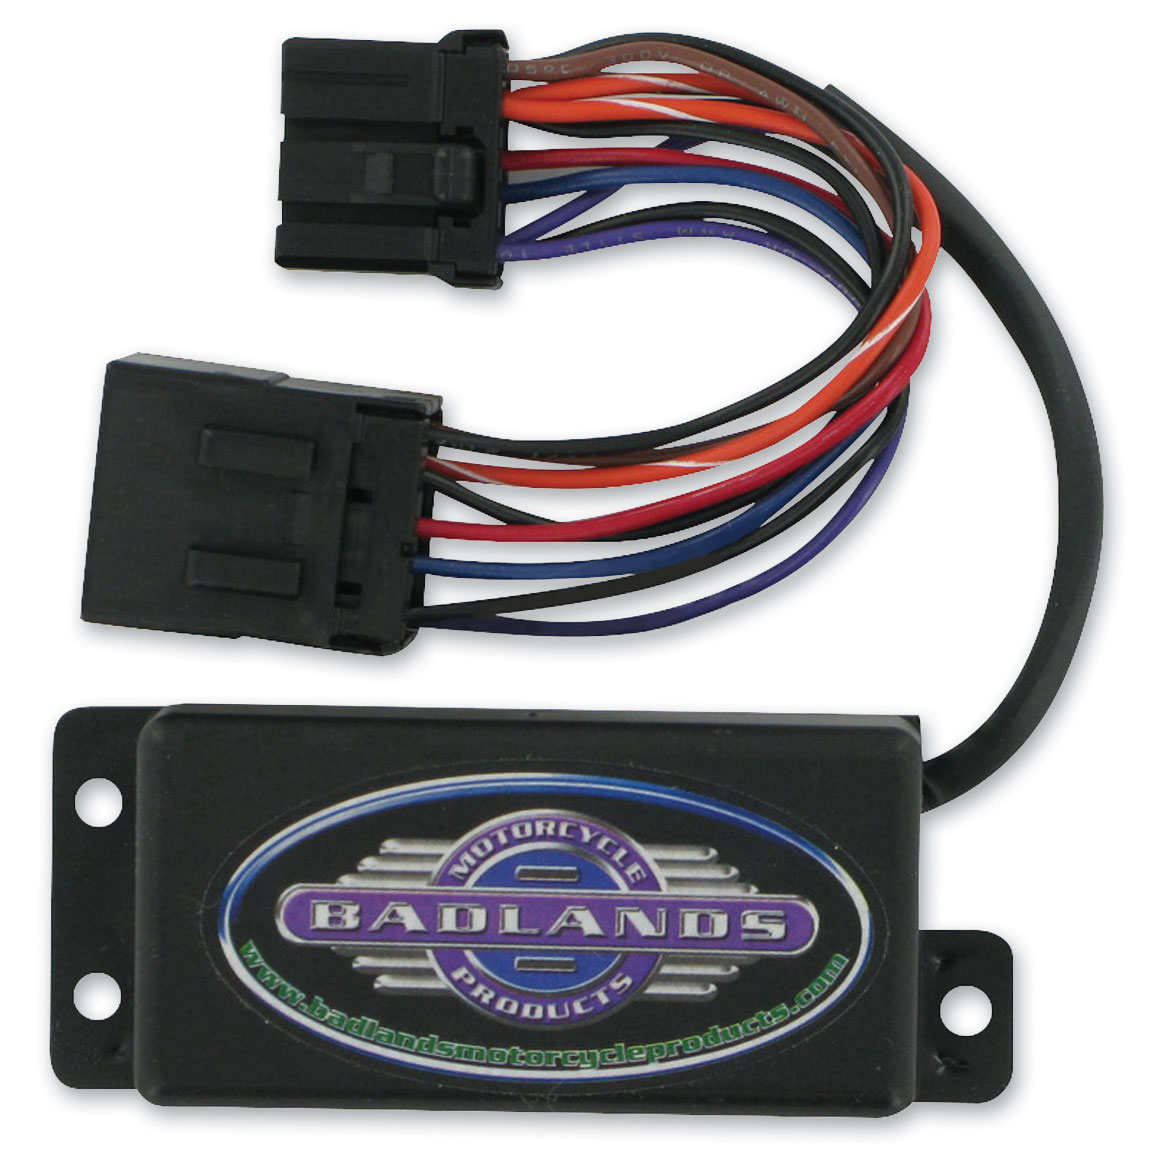 306 914_A badlands motorcycle parts & accessories j&p cycles badlands ill-01 wiring diagram at gsmportal.co